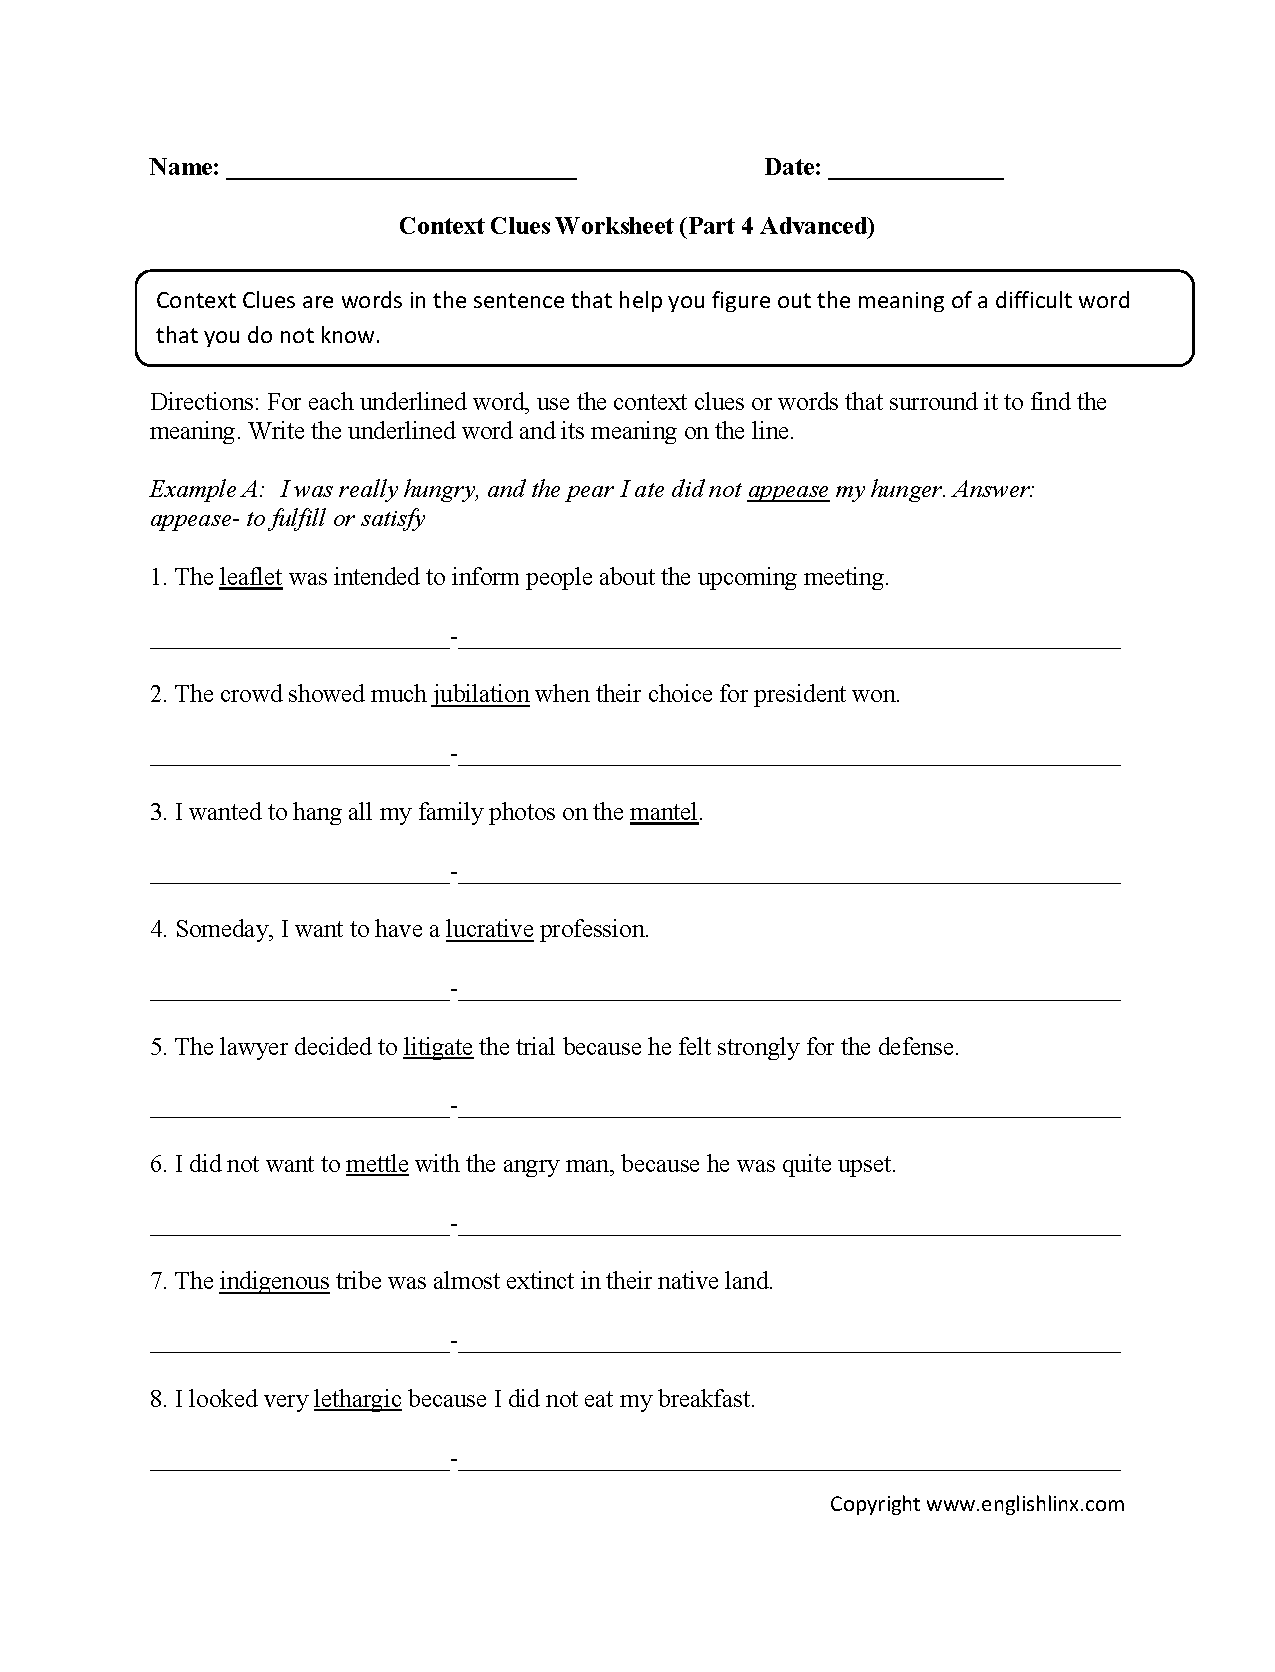 hight resolution of Context Clues Worksheets 7th Grade   Printable Worksheets and Activities  for Teachers